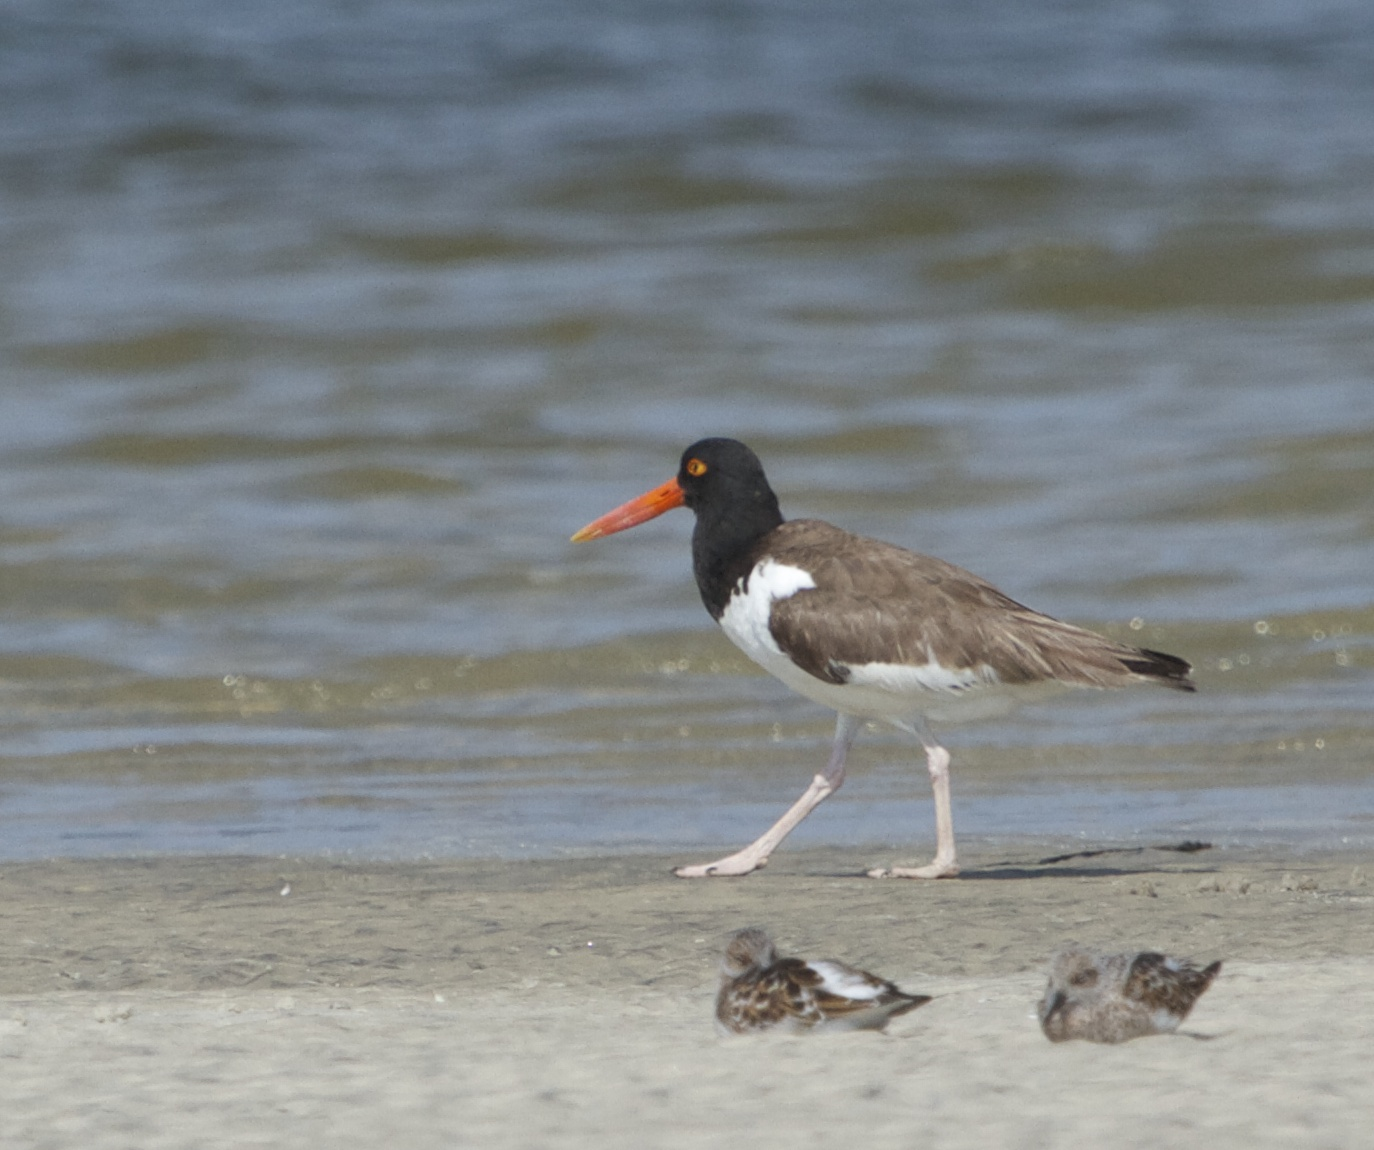 American Oystercatcher. Only about 10000 birds are estimated to remain in North America.